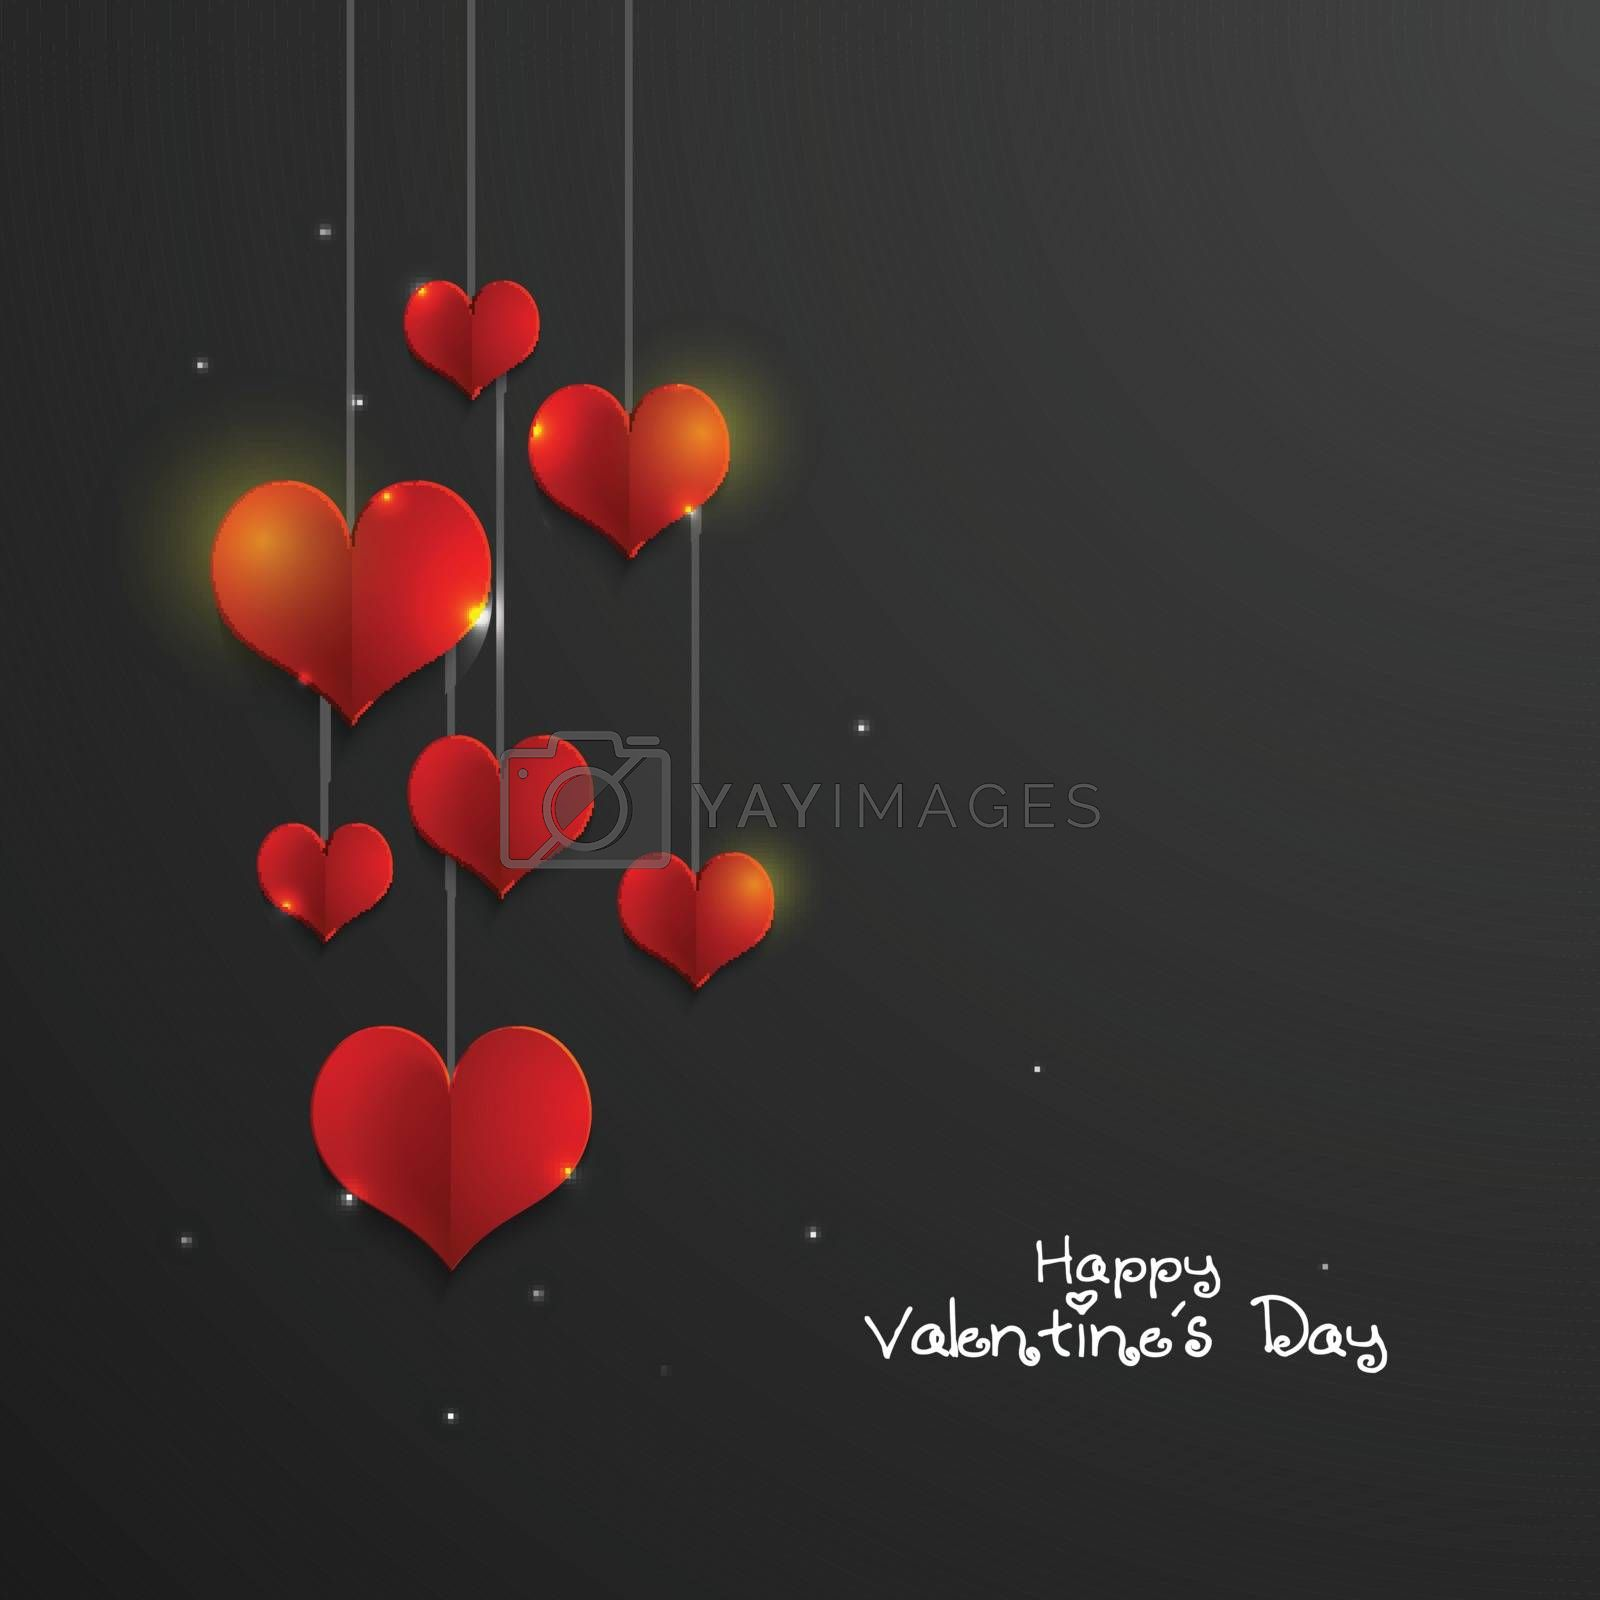 Shiny Red paper Hearts decorated greeting card for Happy Valentine's Day Celebration.